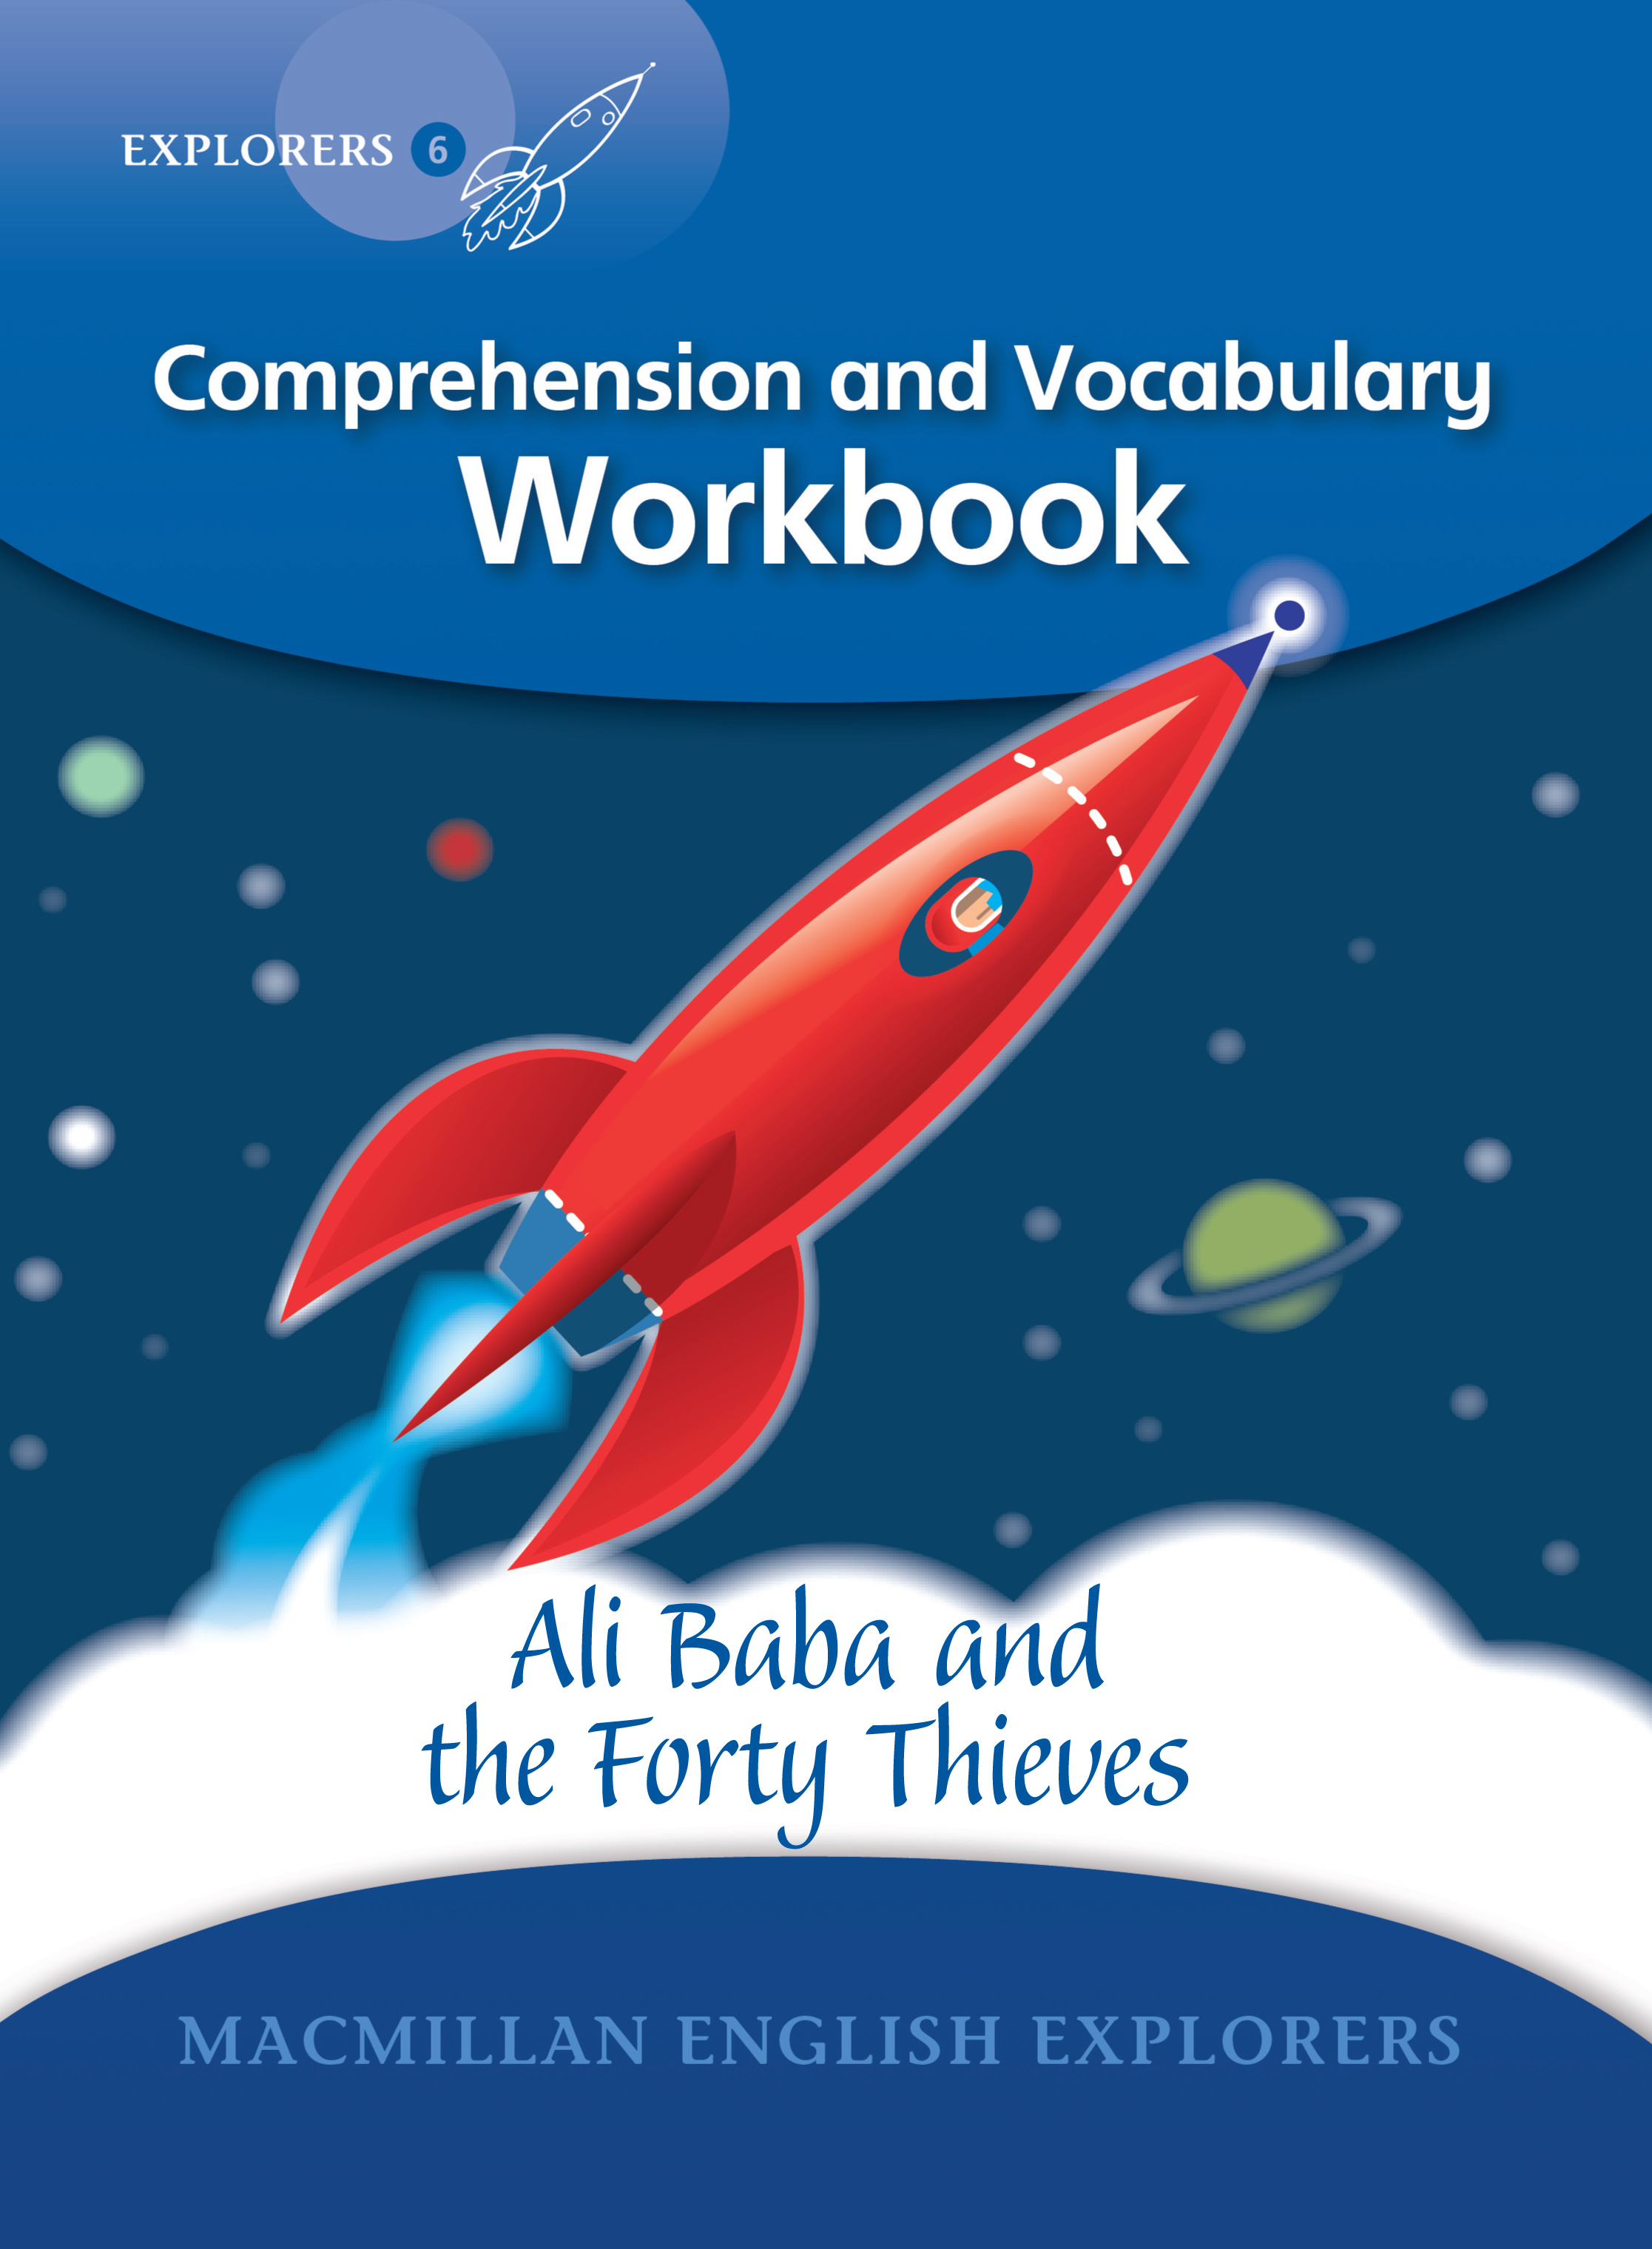 Explorers 6: Ali Baba and the Forty Thieves Workbook